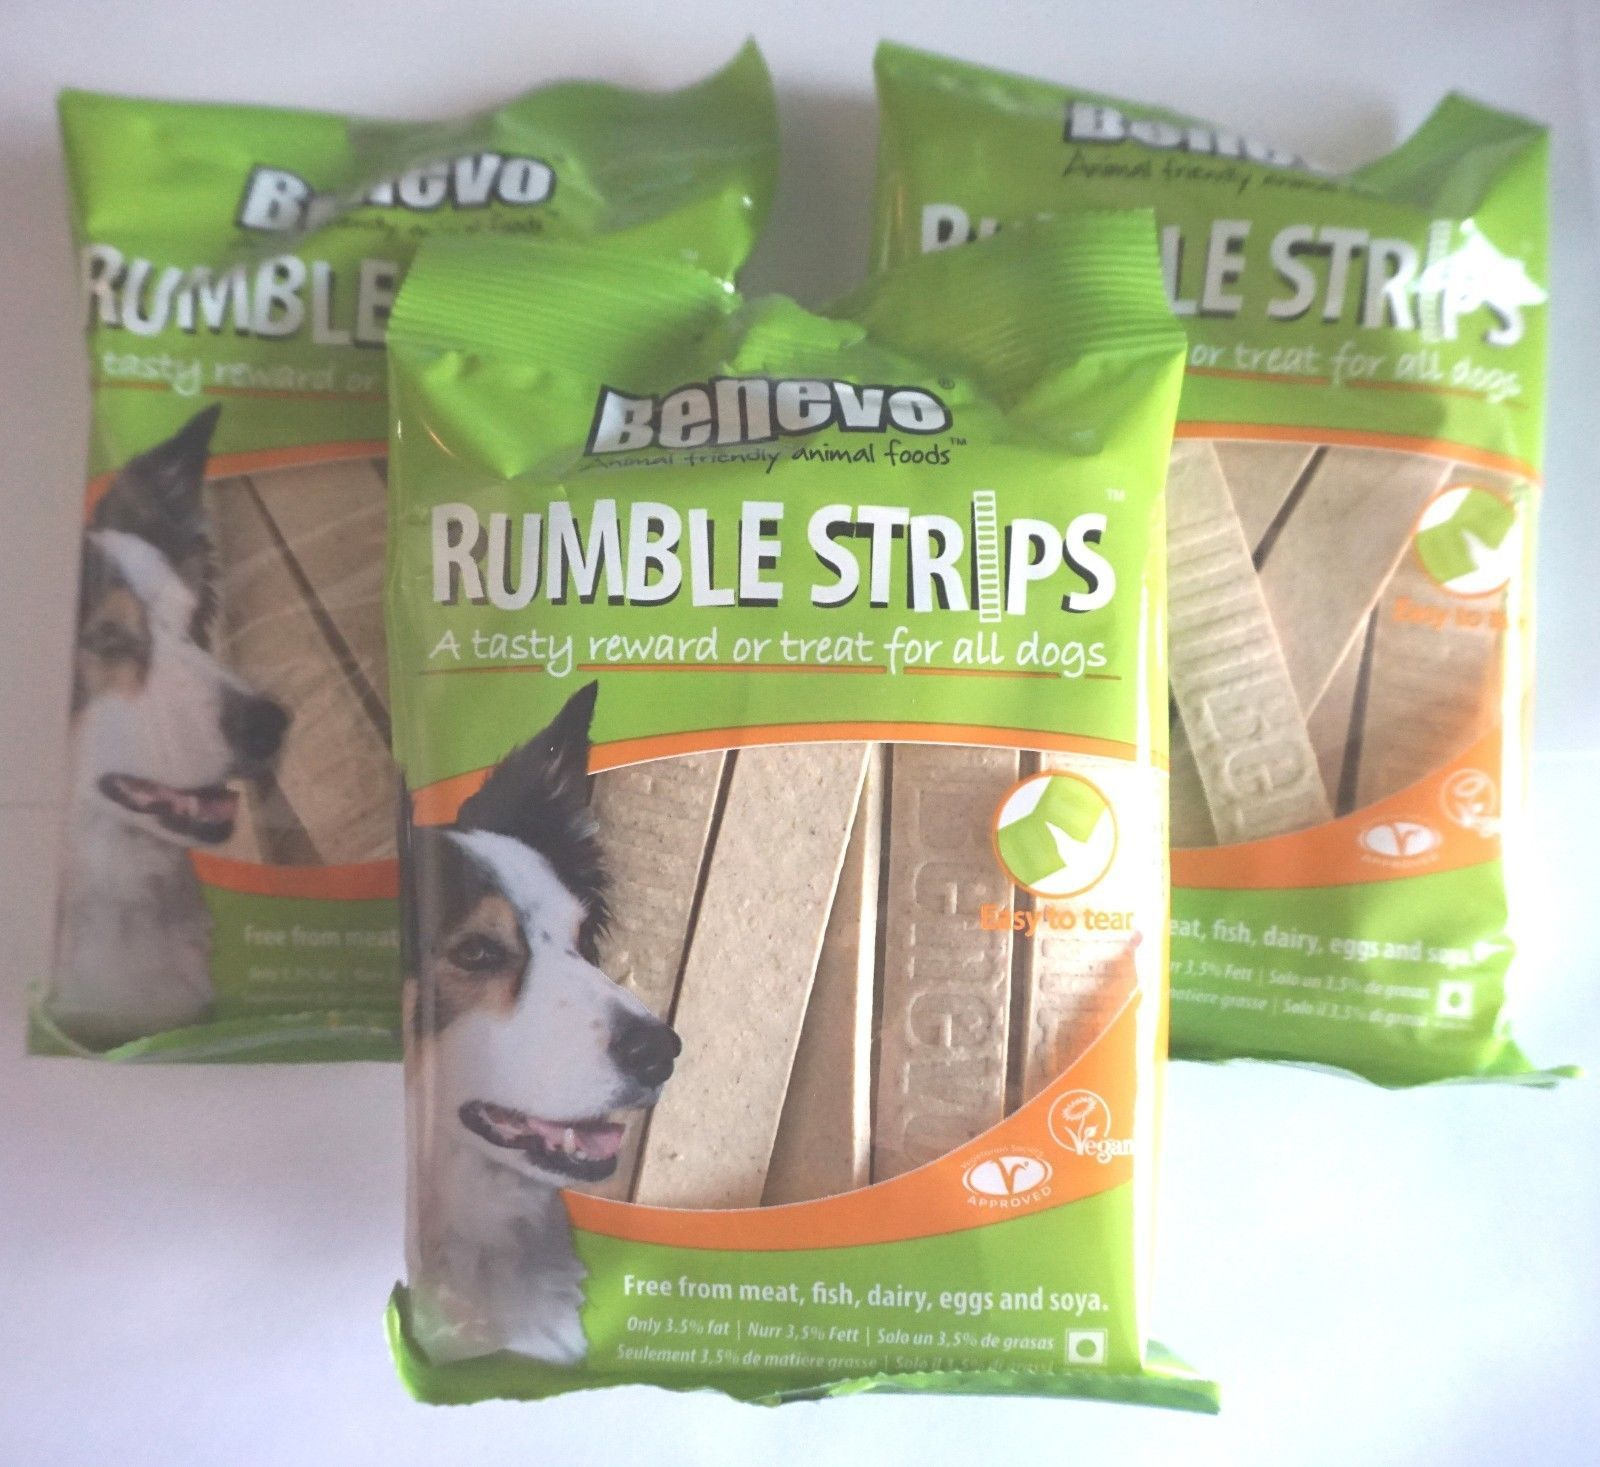 3 X Vegan Vegetarian Low Fat Dog Treats Food Benevo Rumble Strips 180g Bulk Buy